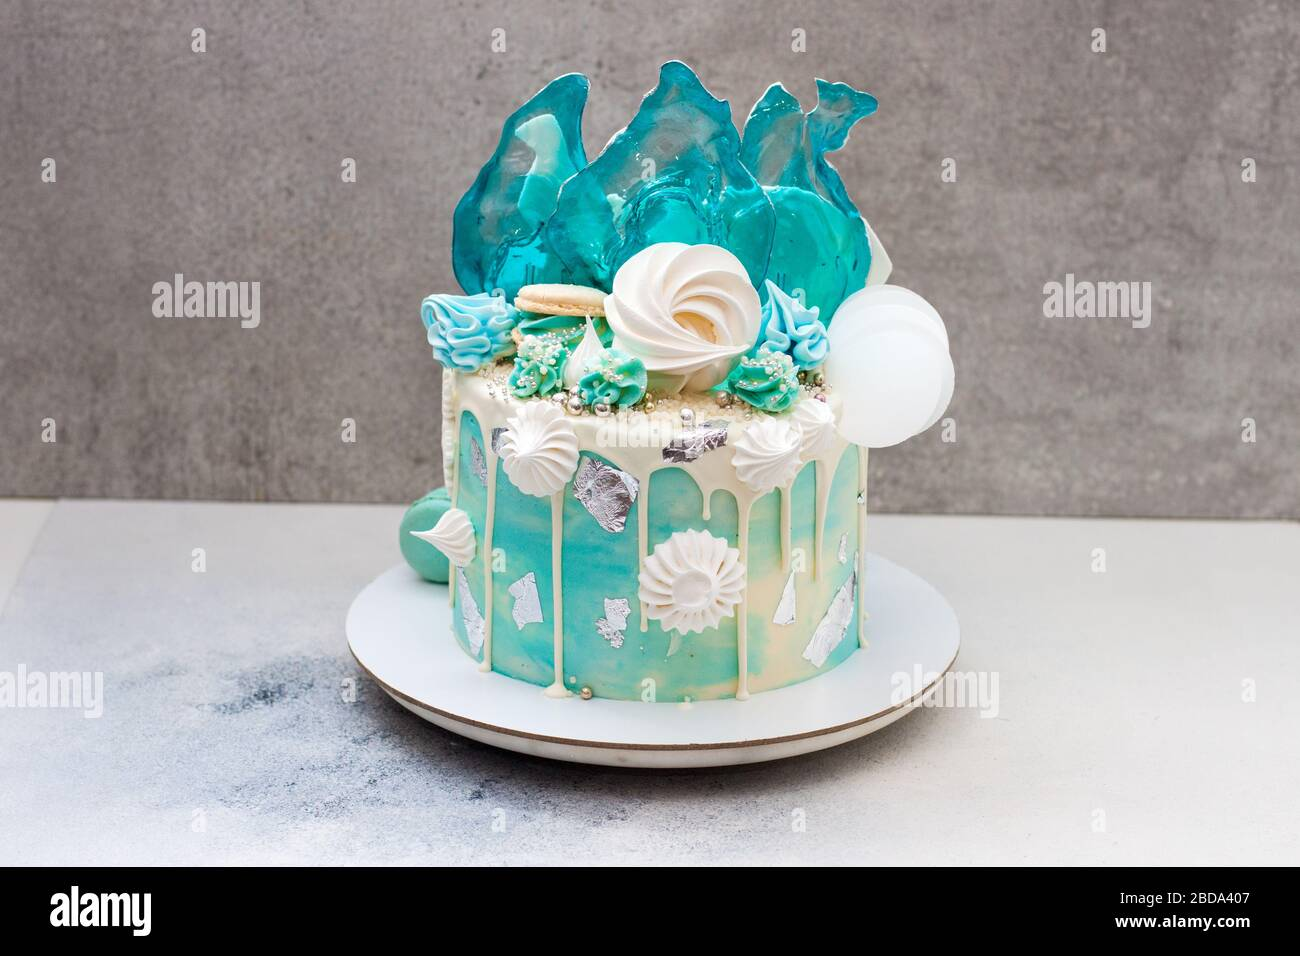 Astounding Modern Frozen Theme Cake Decorated With Blue Caramel White Funny Birthday Cards Online Alyptdamsfinfo